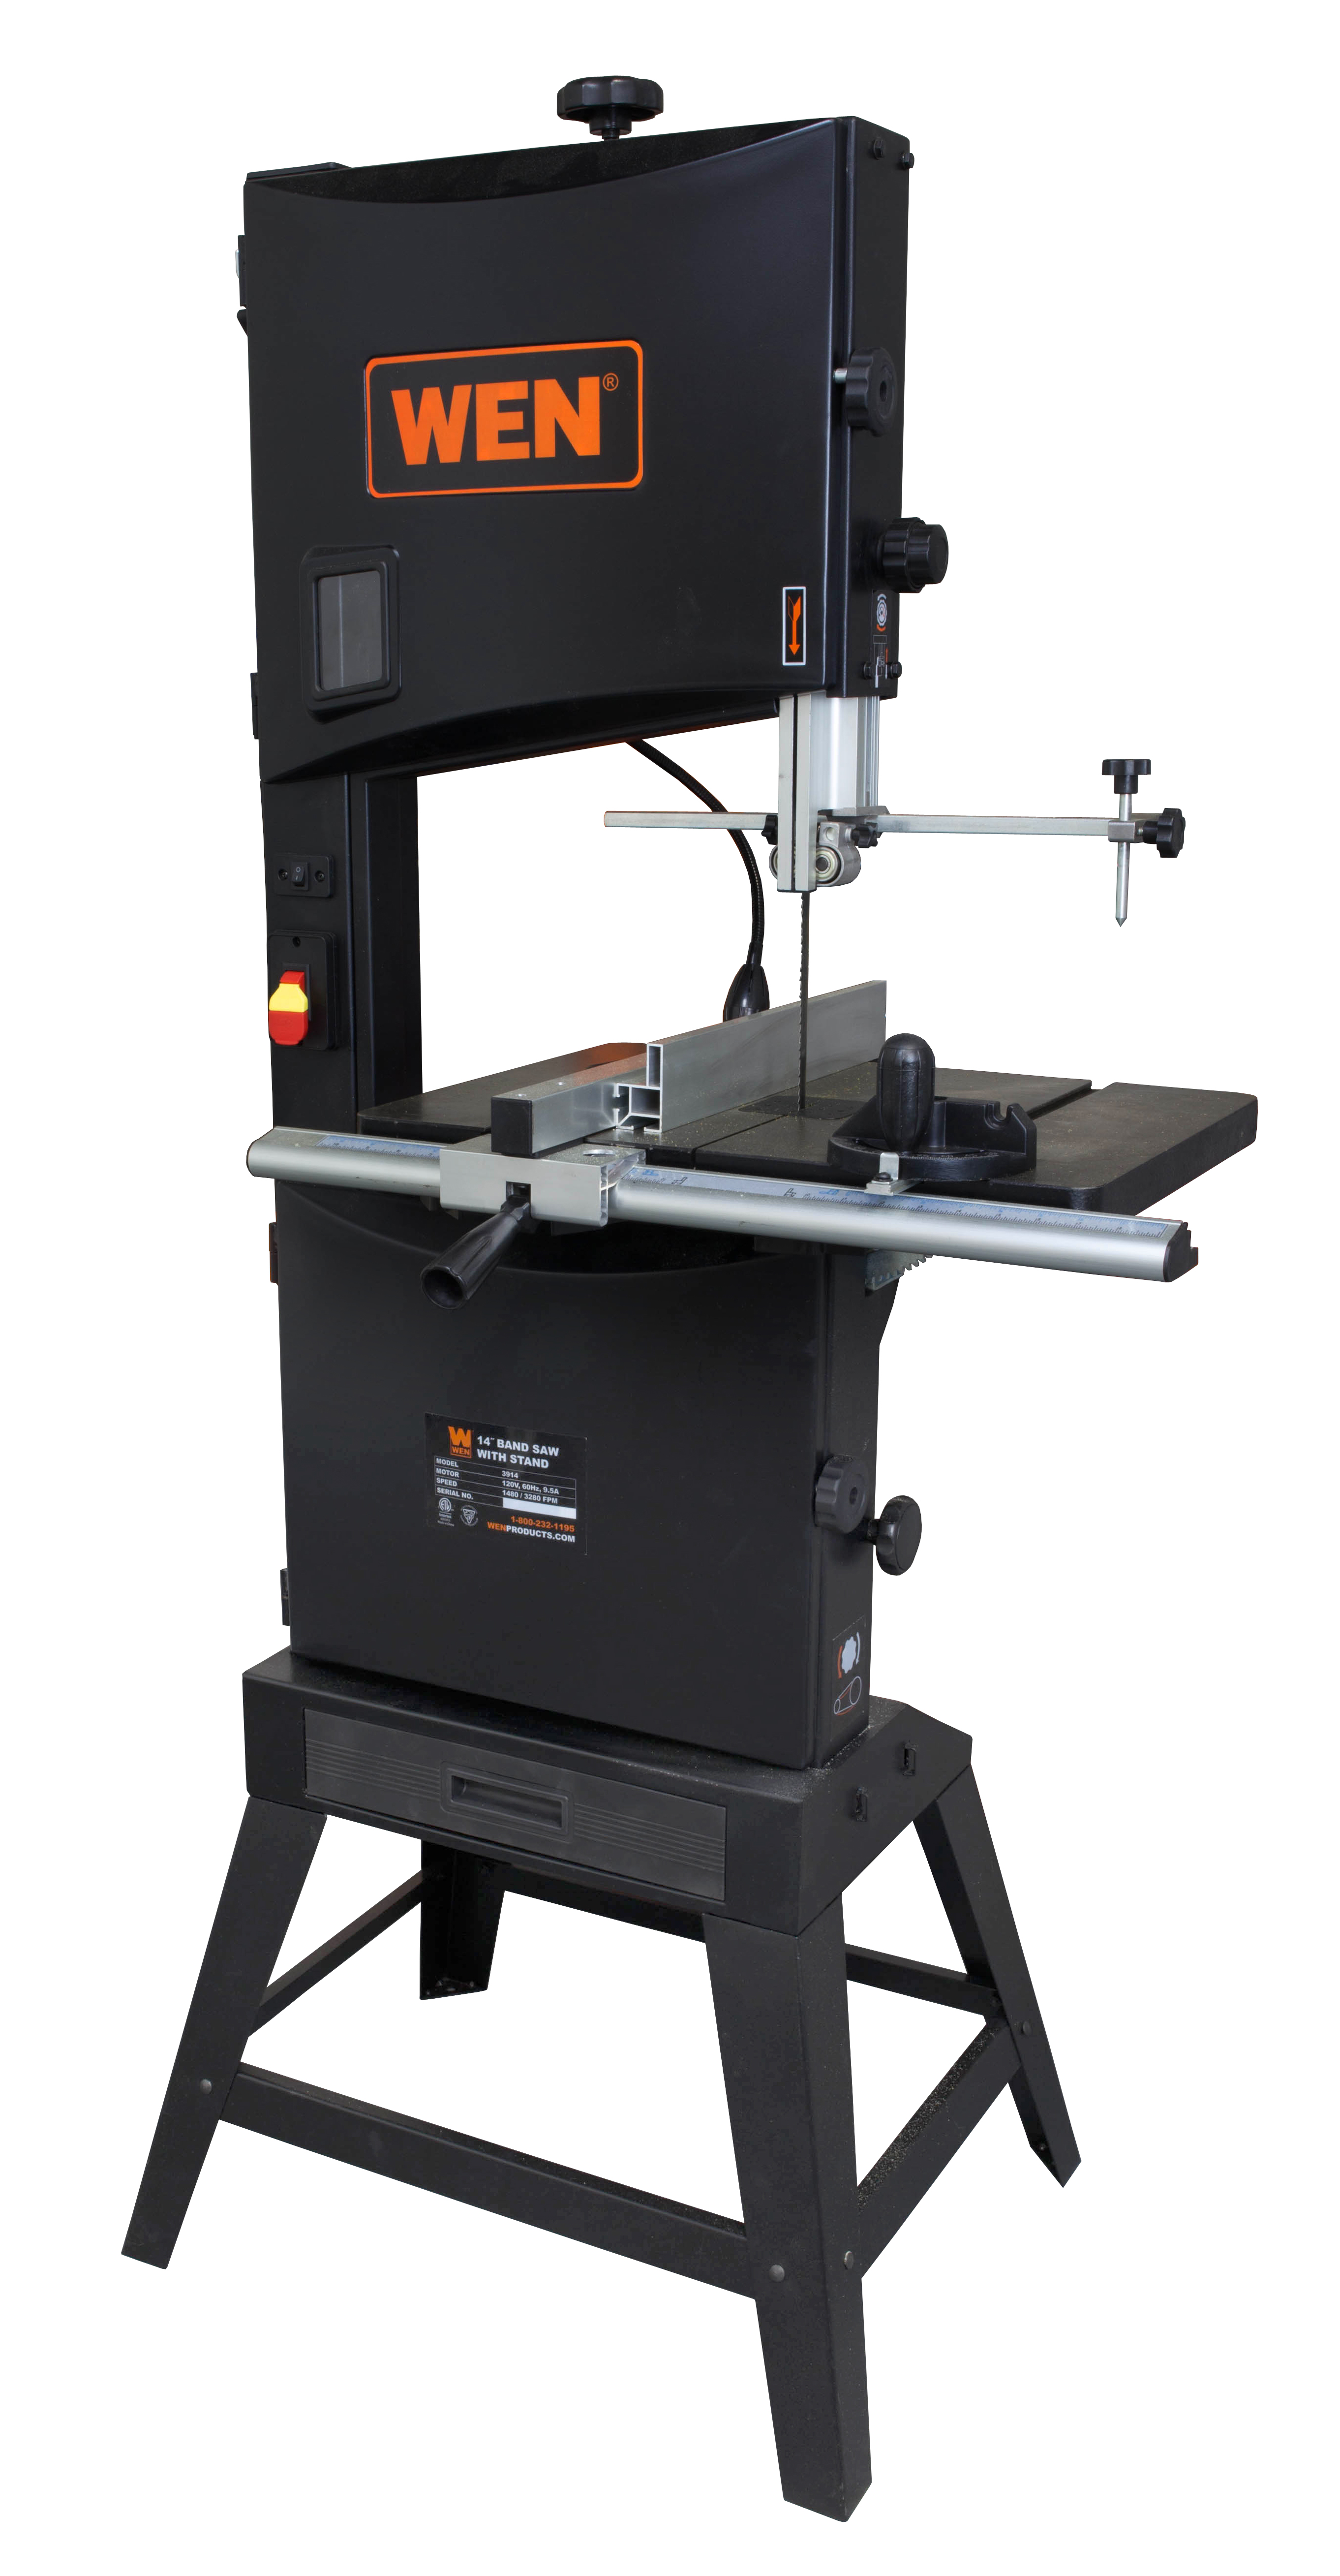 WEN 14 Inch Two Speed Band Saw With Stand And Worklight